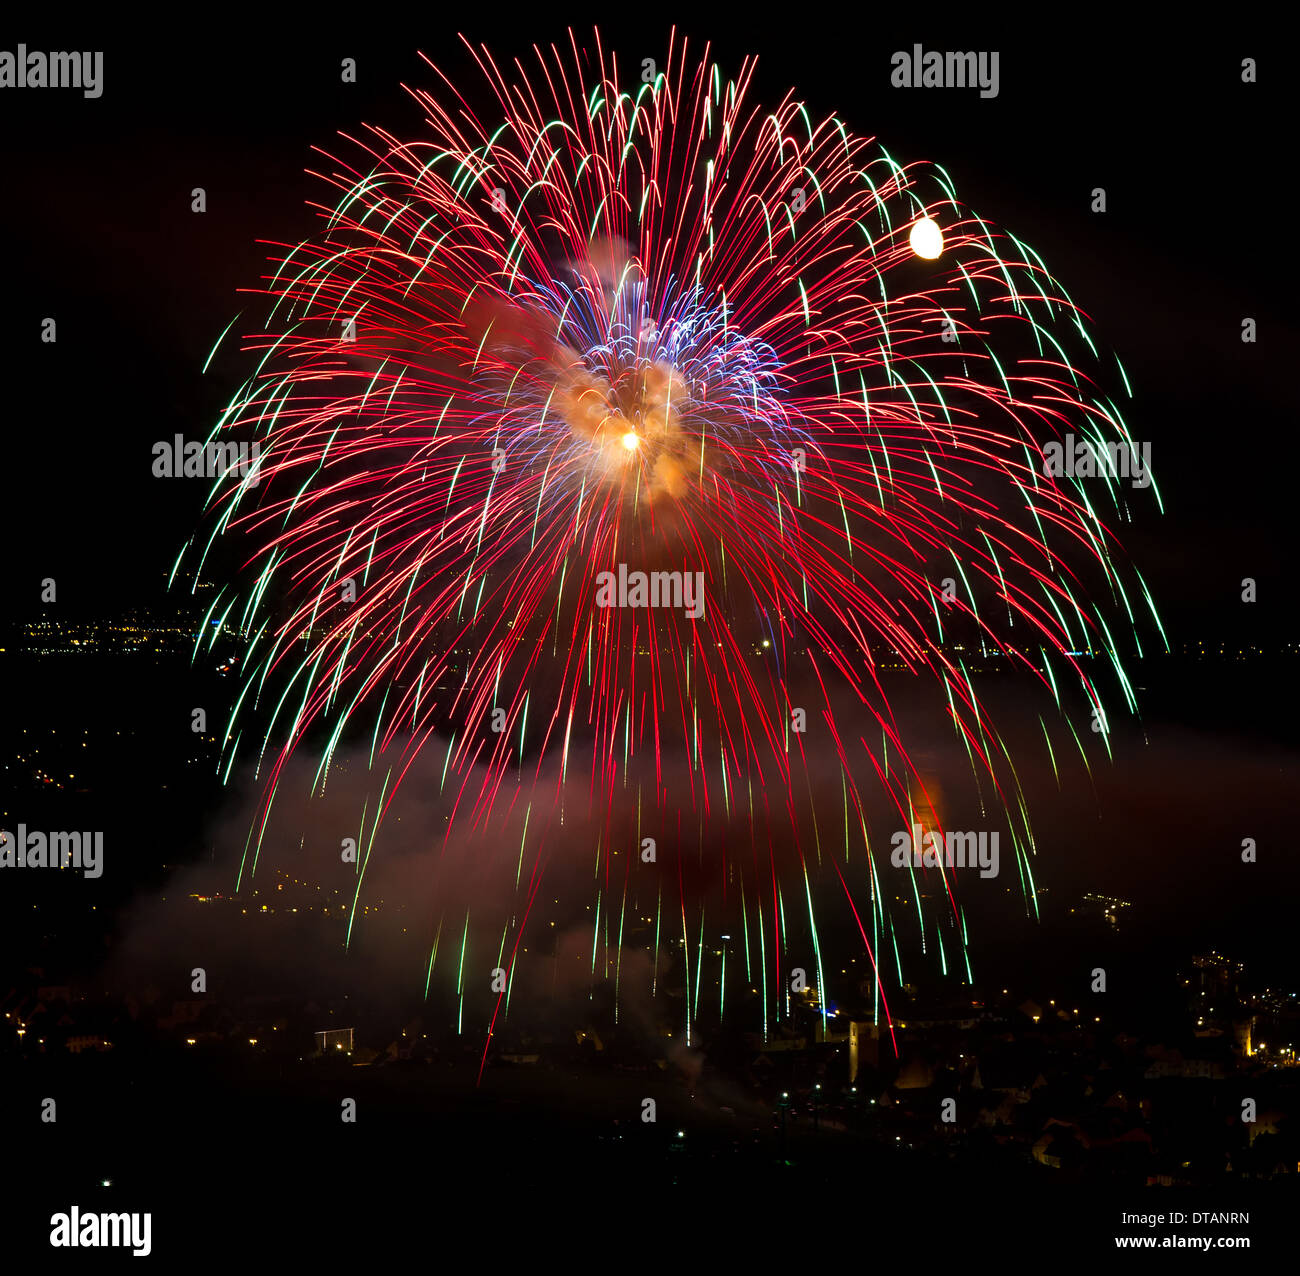 Colourful Fireworks with City lights - Stock Image